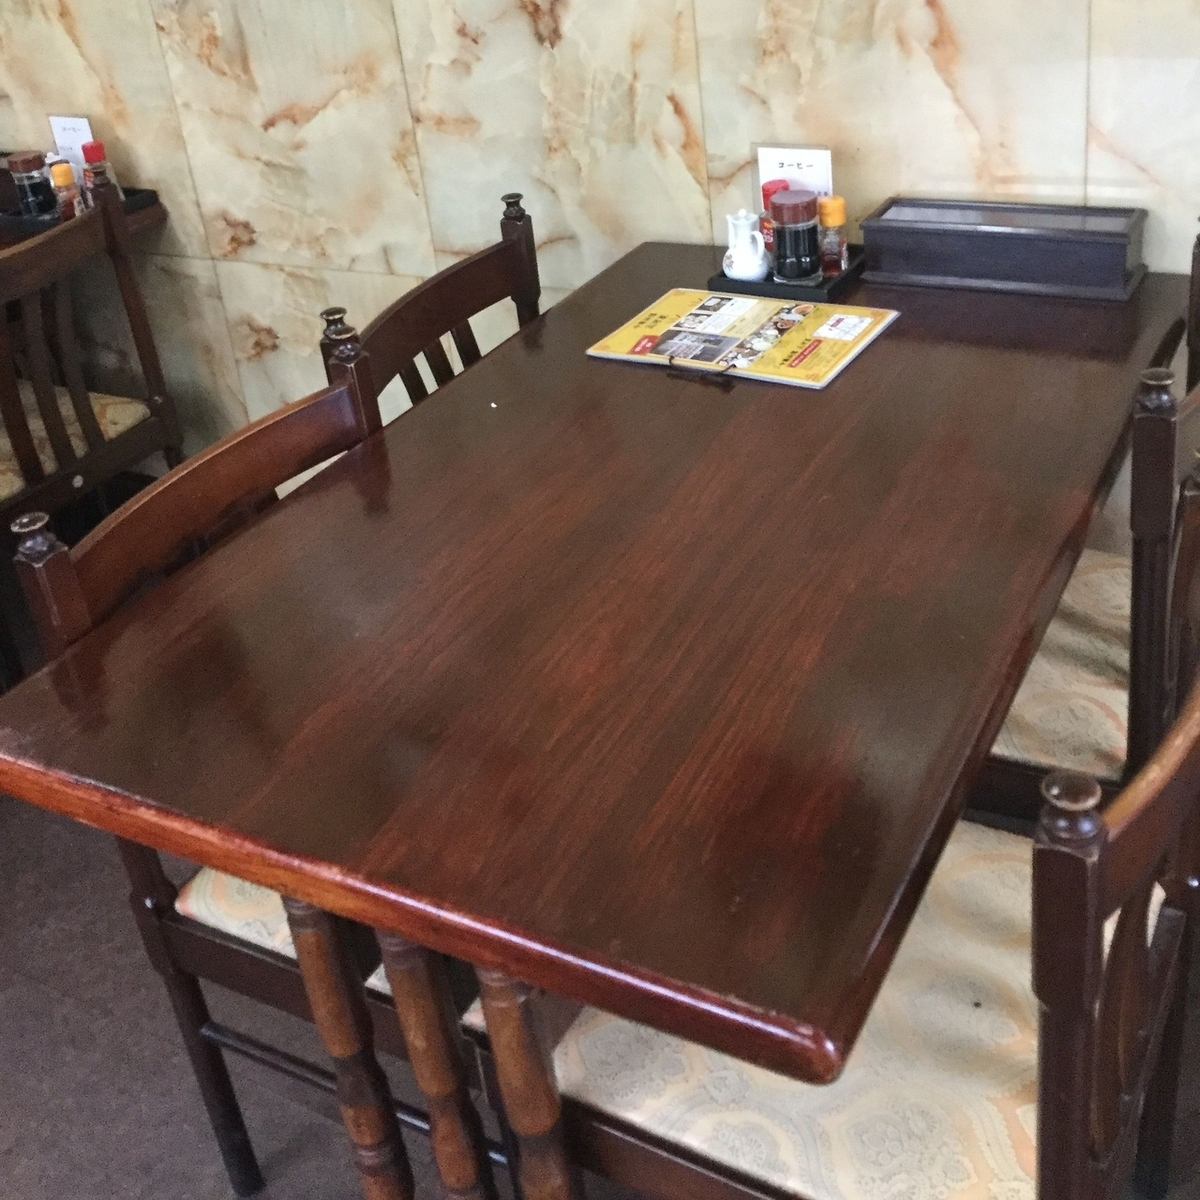 It is a table seat that can accommodate from 2 to 4 people.We will definitely have a seat for a small group of drinking parties.